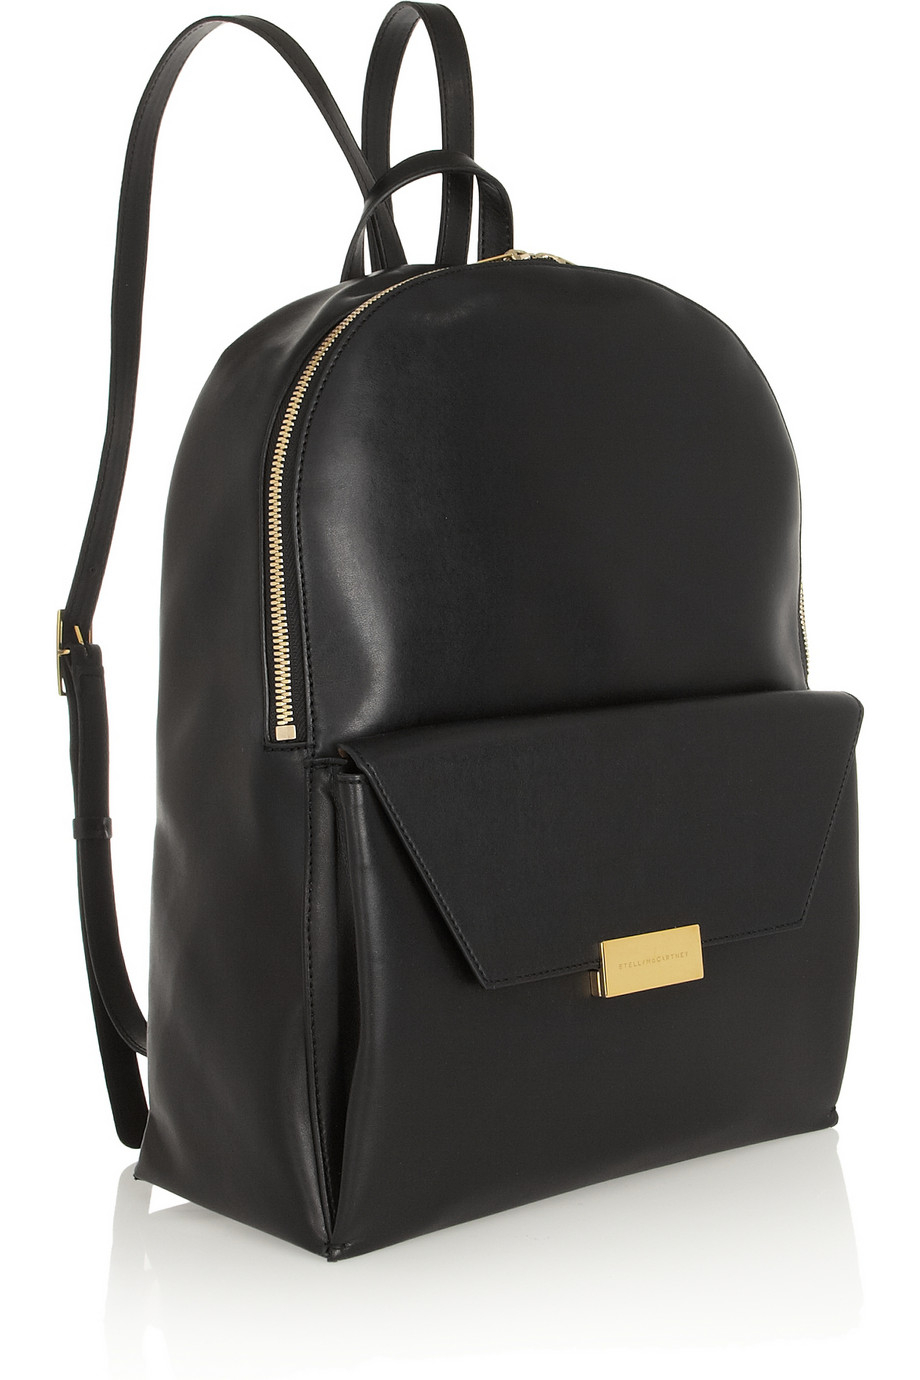 stella mccartney beckett faux leather backpack in black lyst. Black Bedroom Furniture Sets. Home Design Ideas